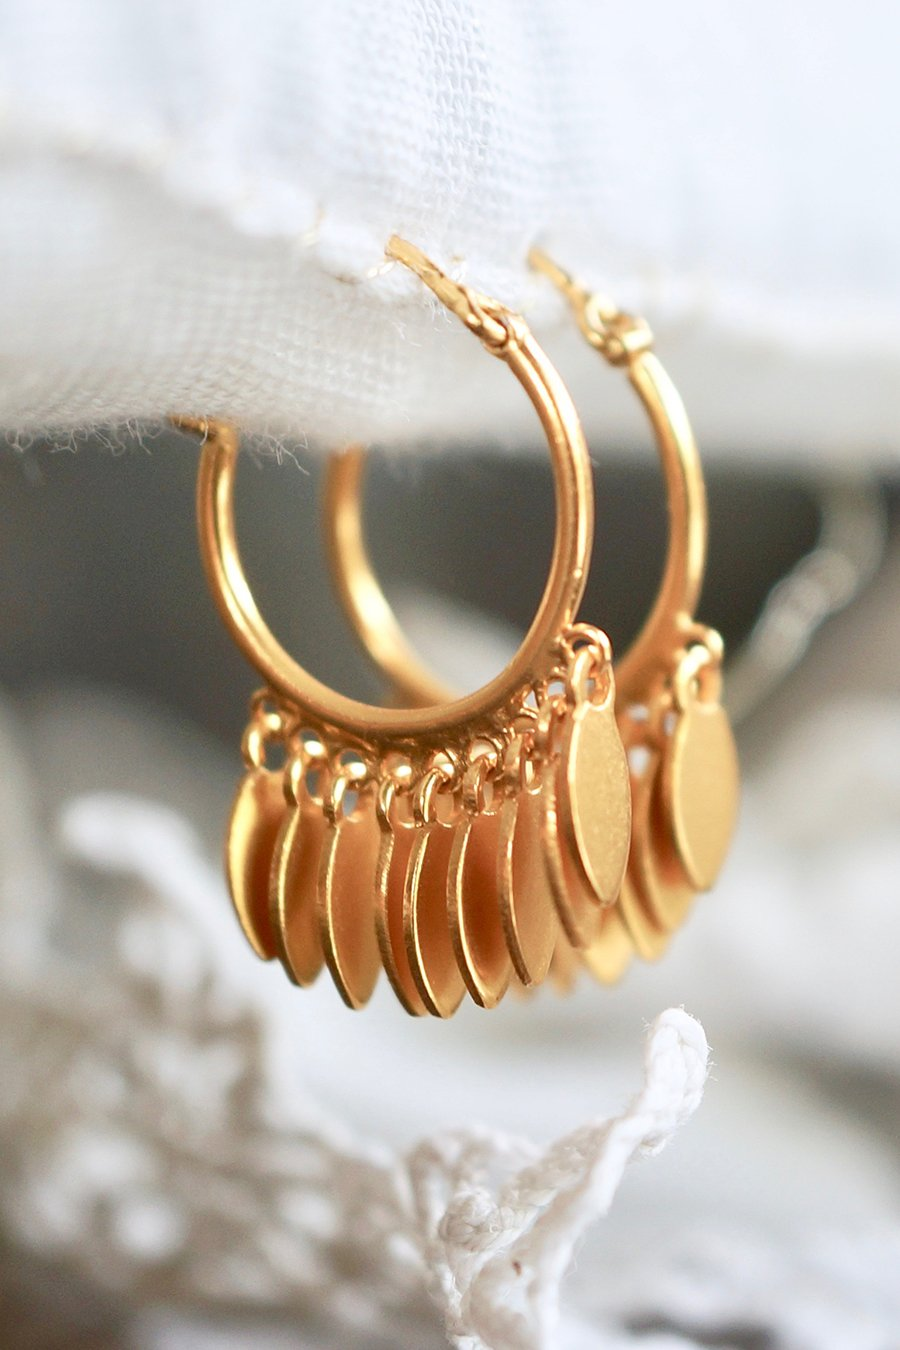 Waste Time With Me Earring - Brass Gold Plated